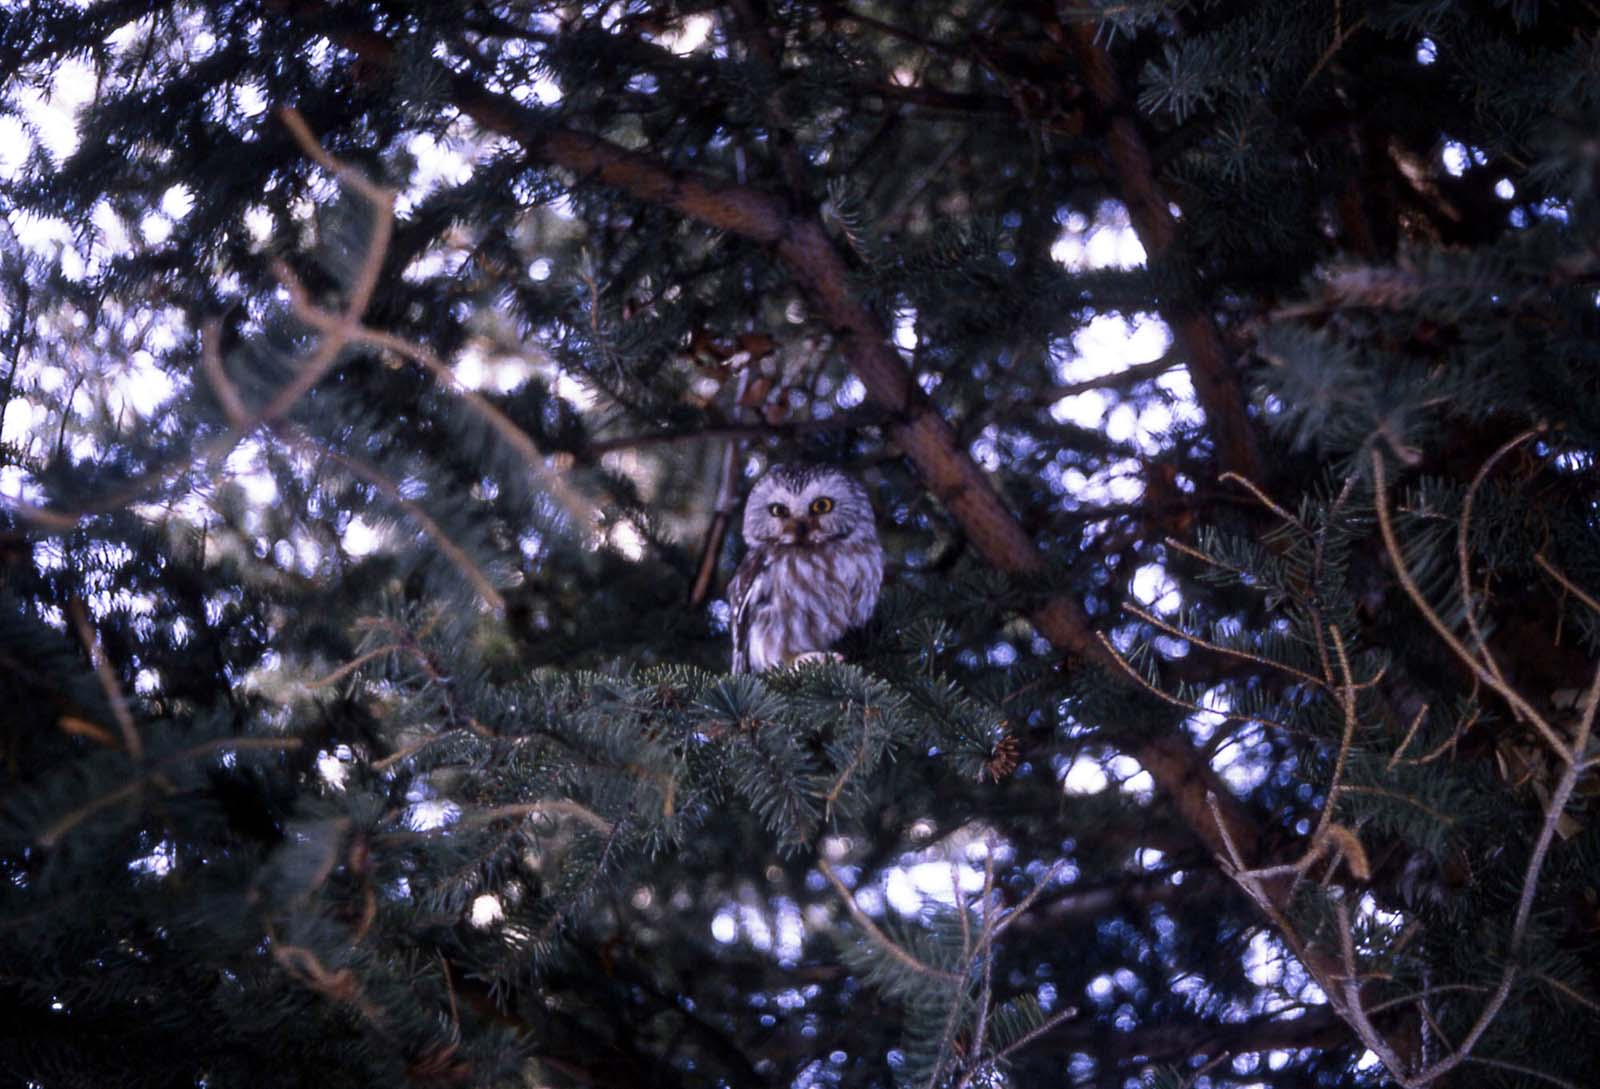 Saw-whet owl, 1967. National Park Service photo by Stan Canter.